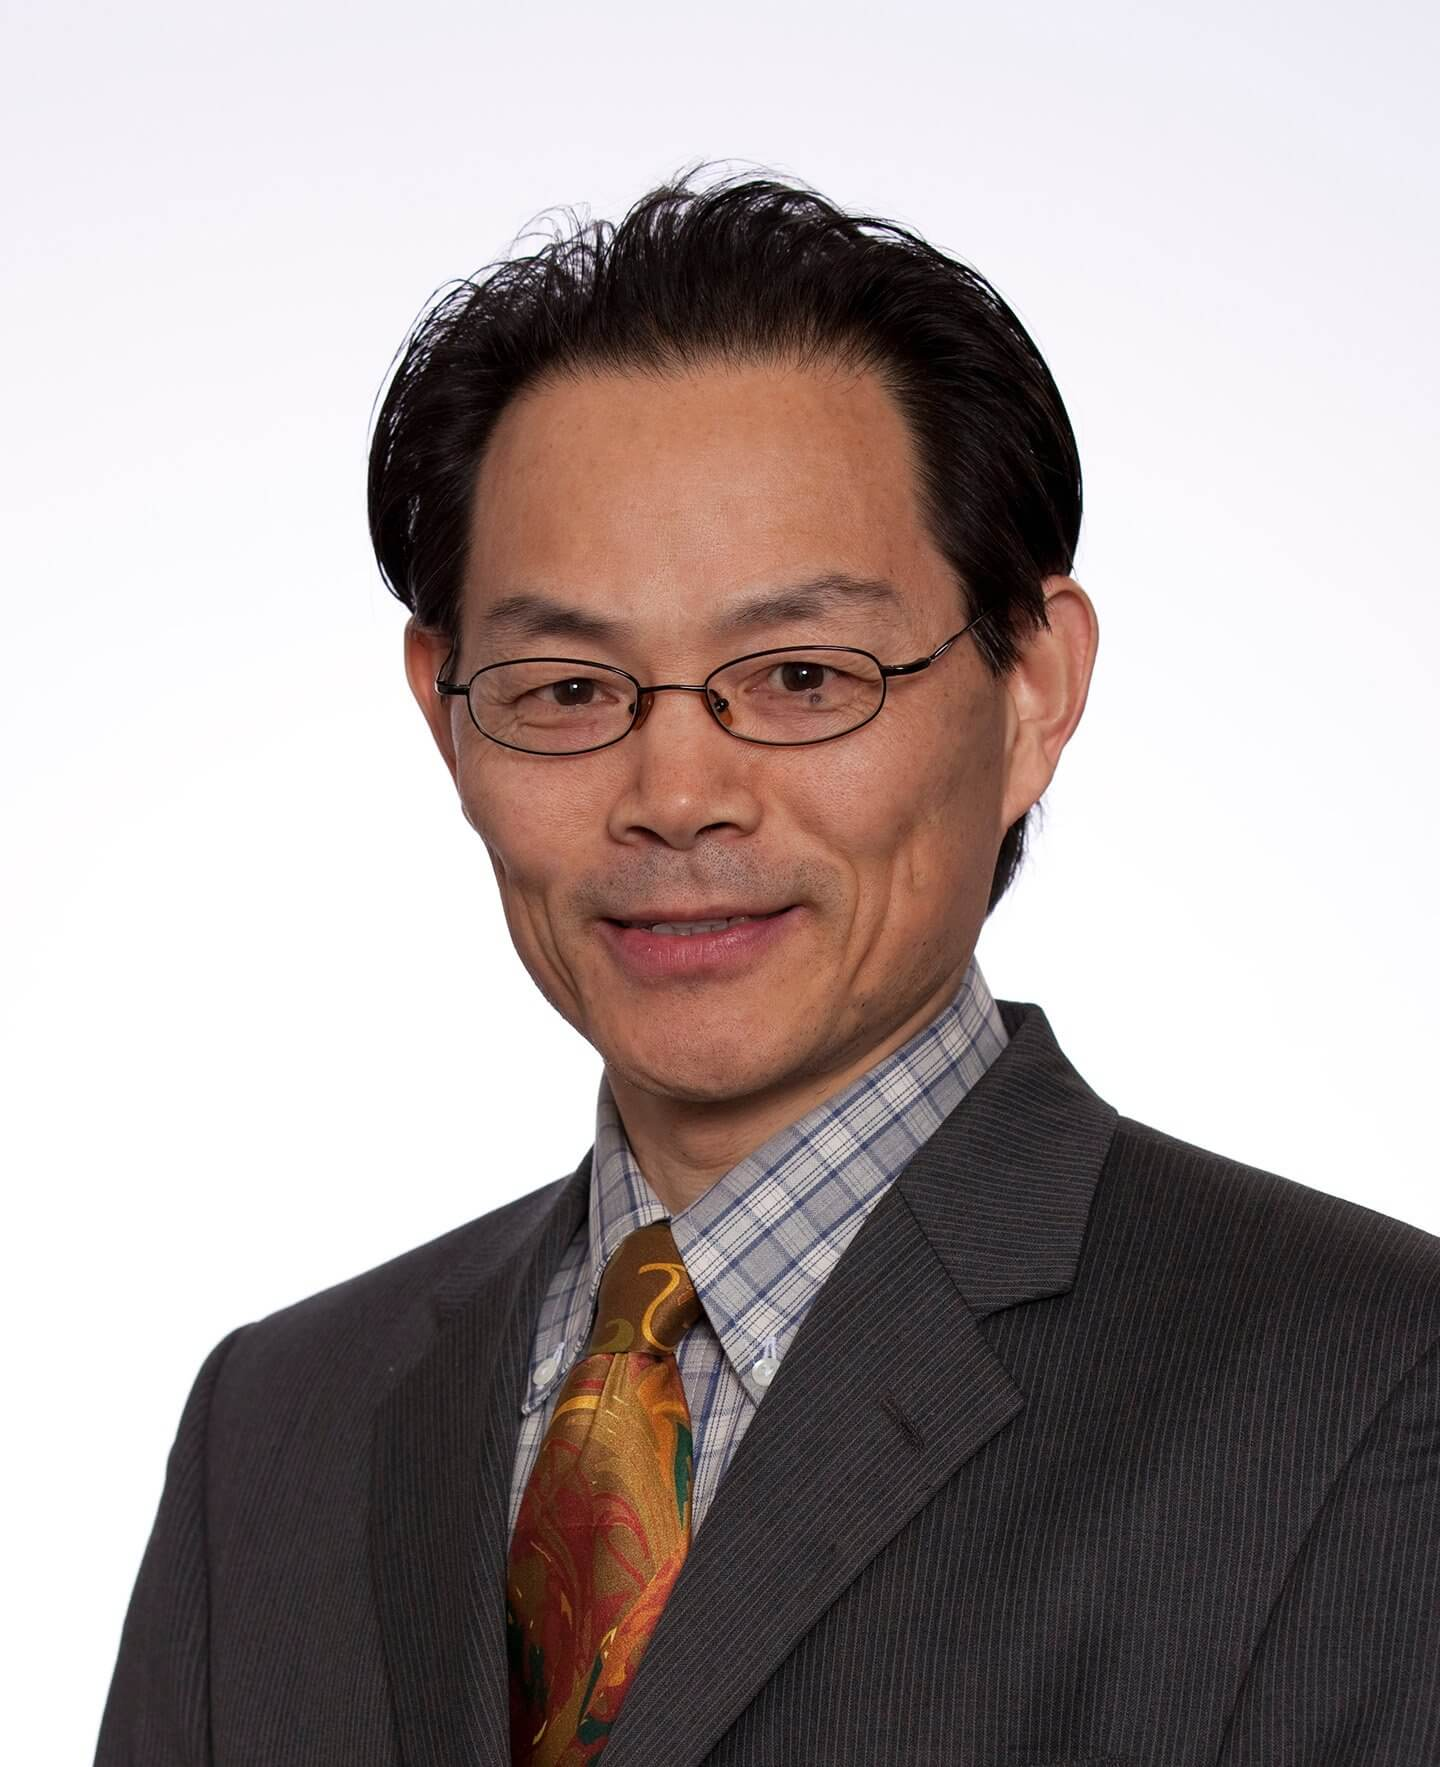 Xian C. Li, M.D., Ph.D., director of the Immunobiology & Transplant Science Center at Houston Methodist Research Institute.